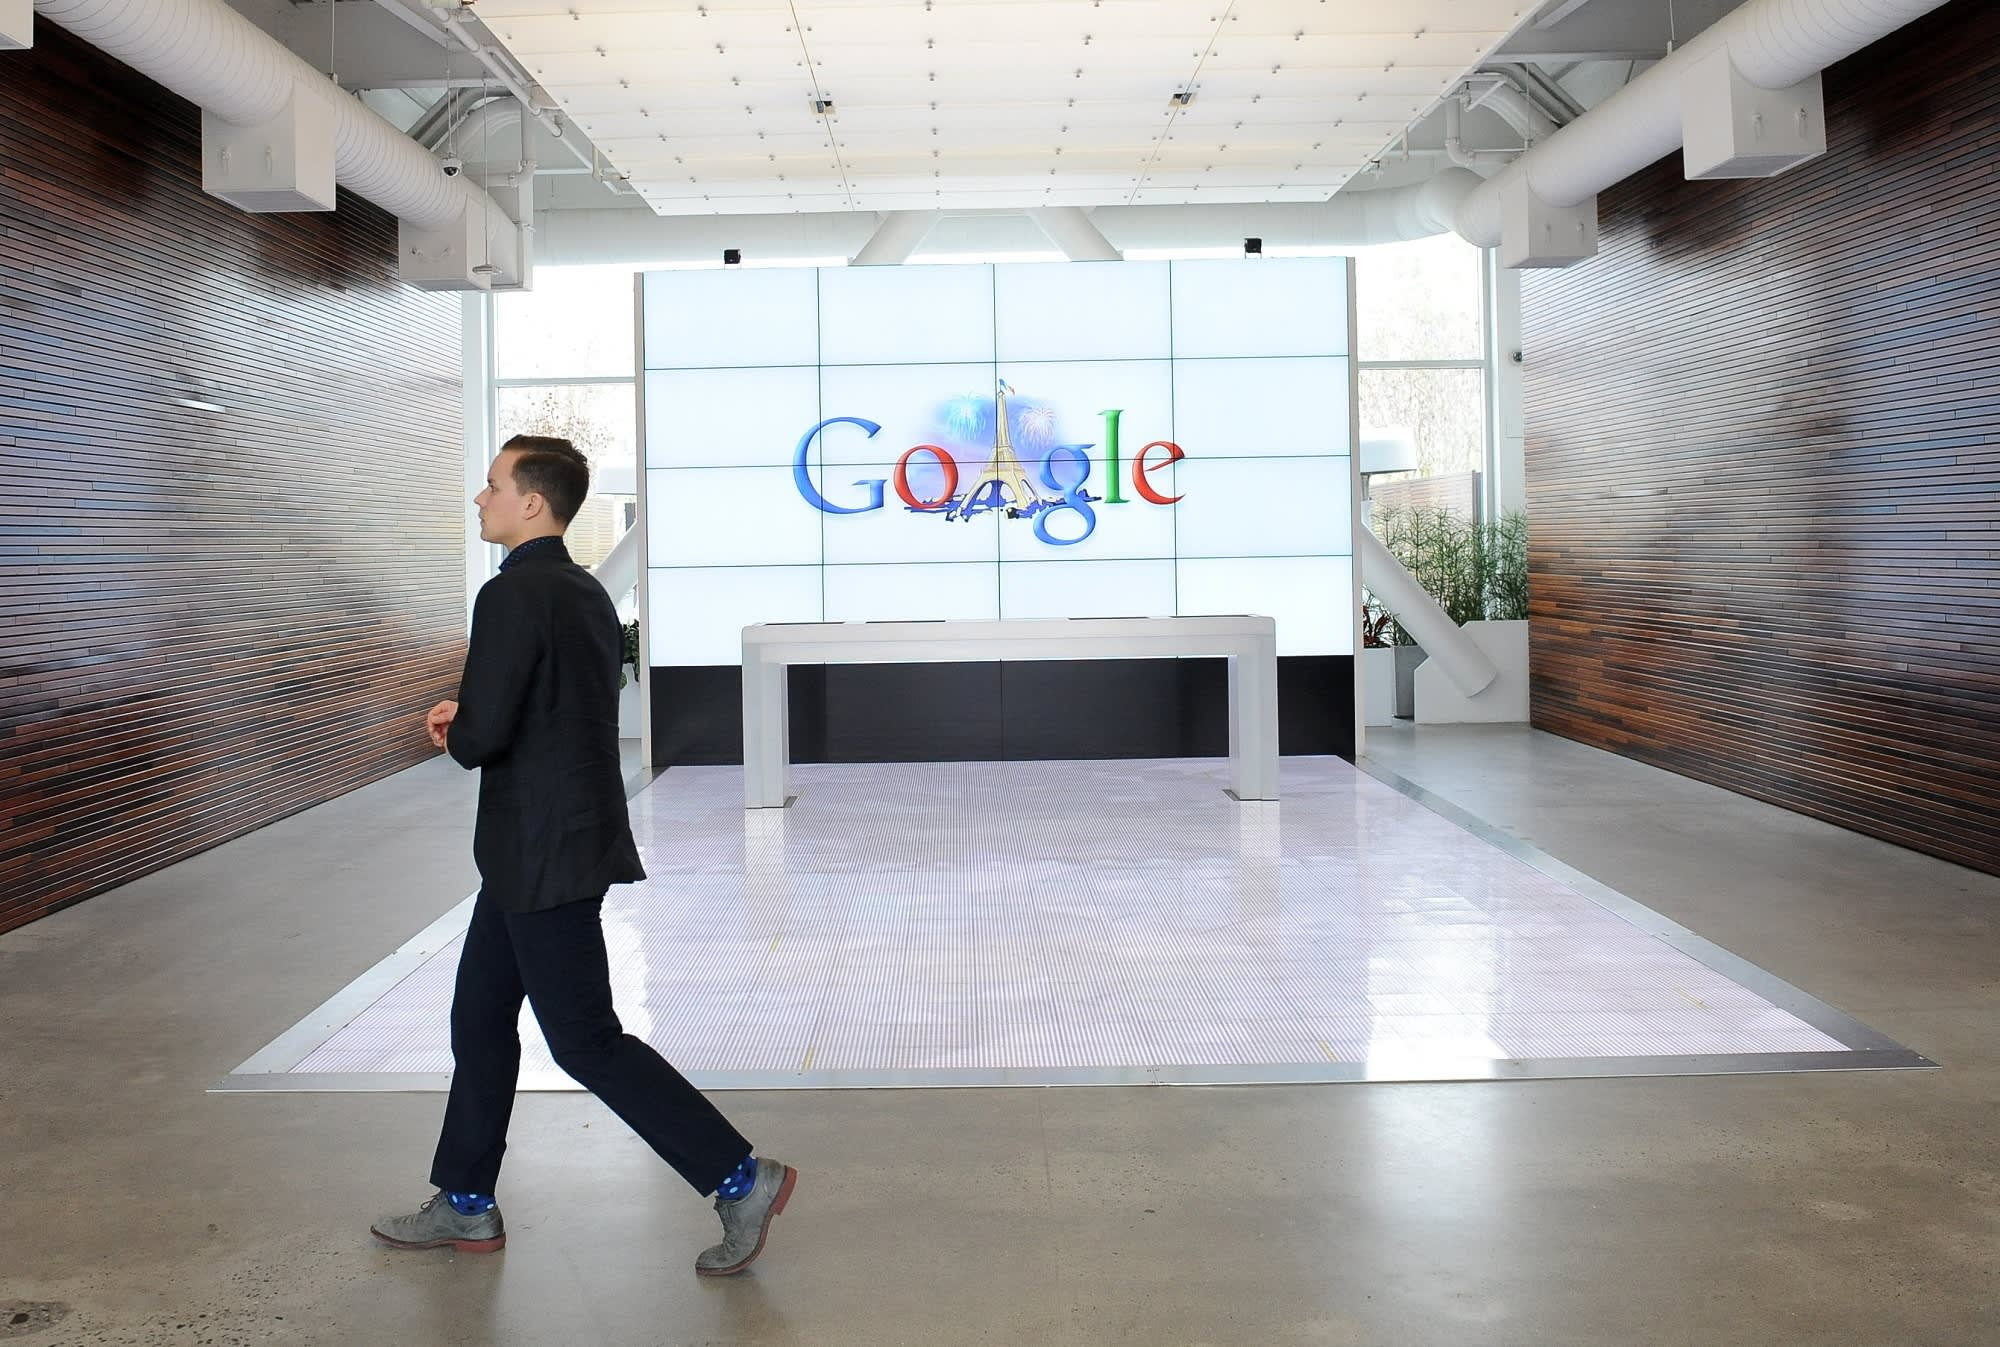 Google bans ads for services that secretly track, monitor people 3